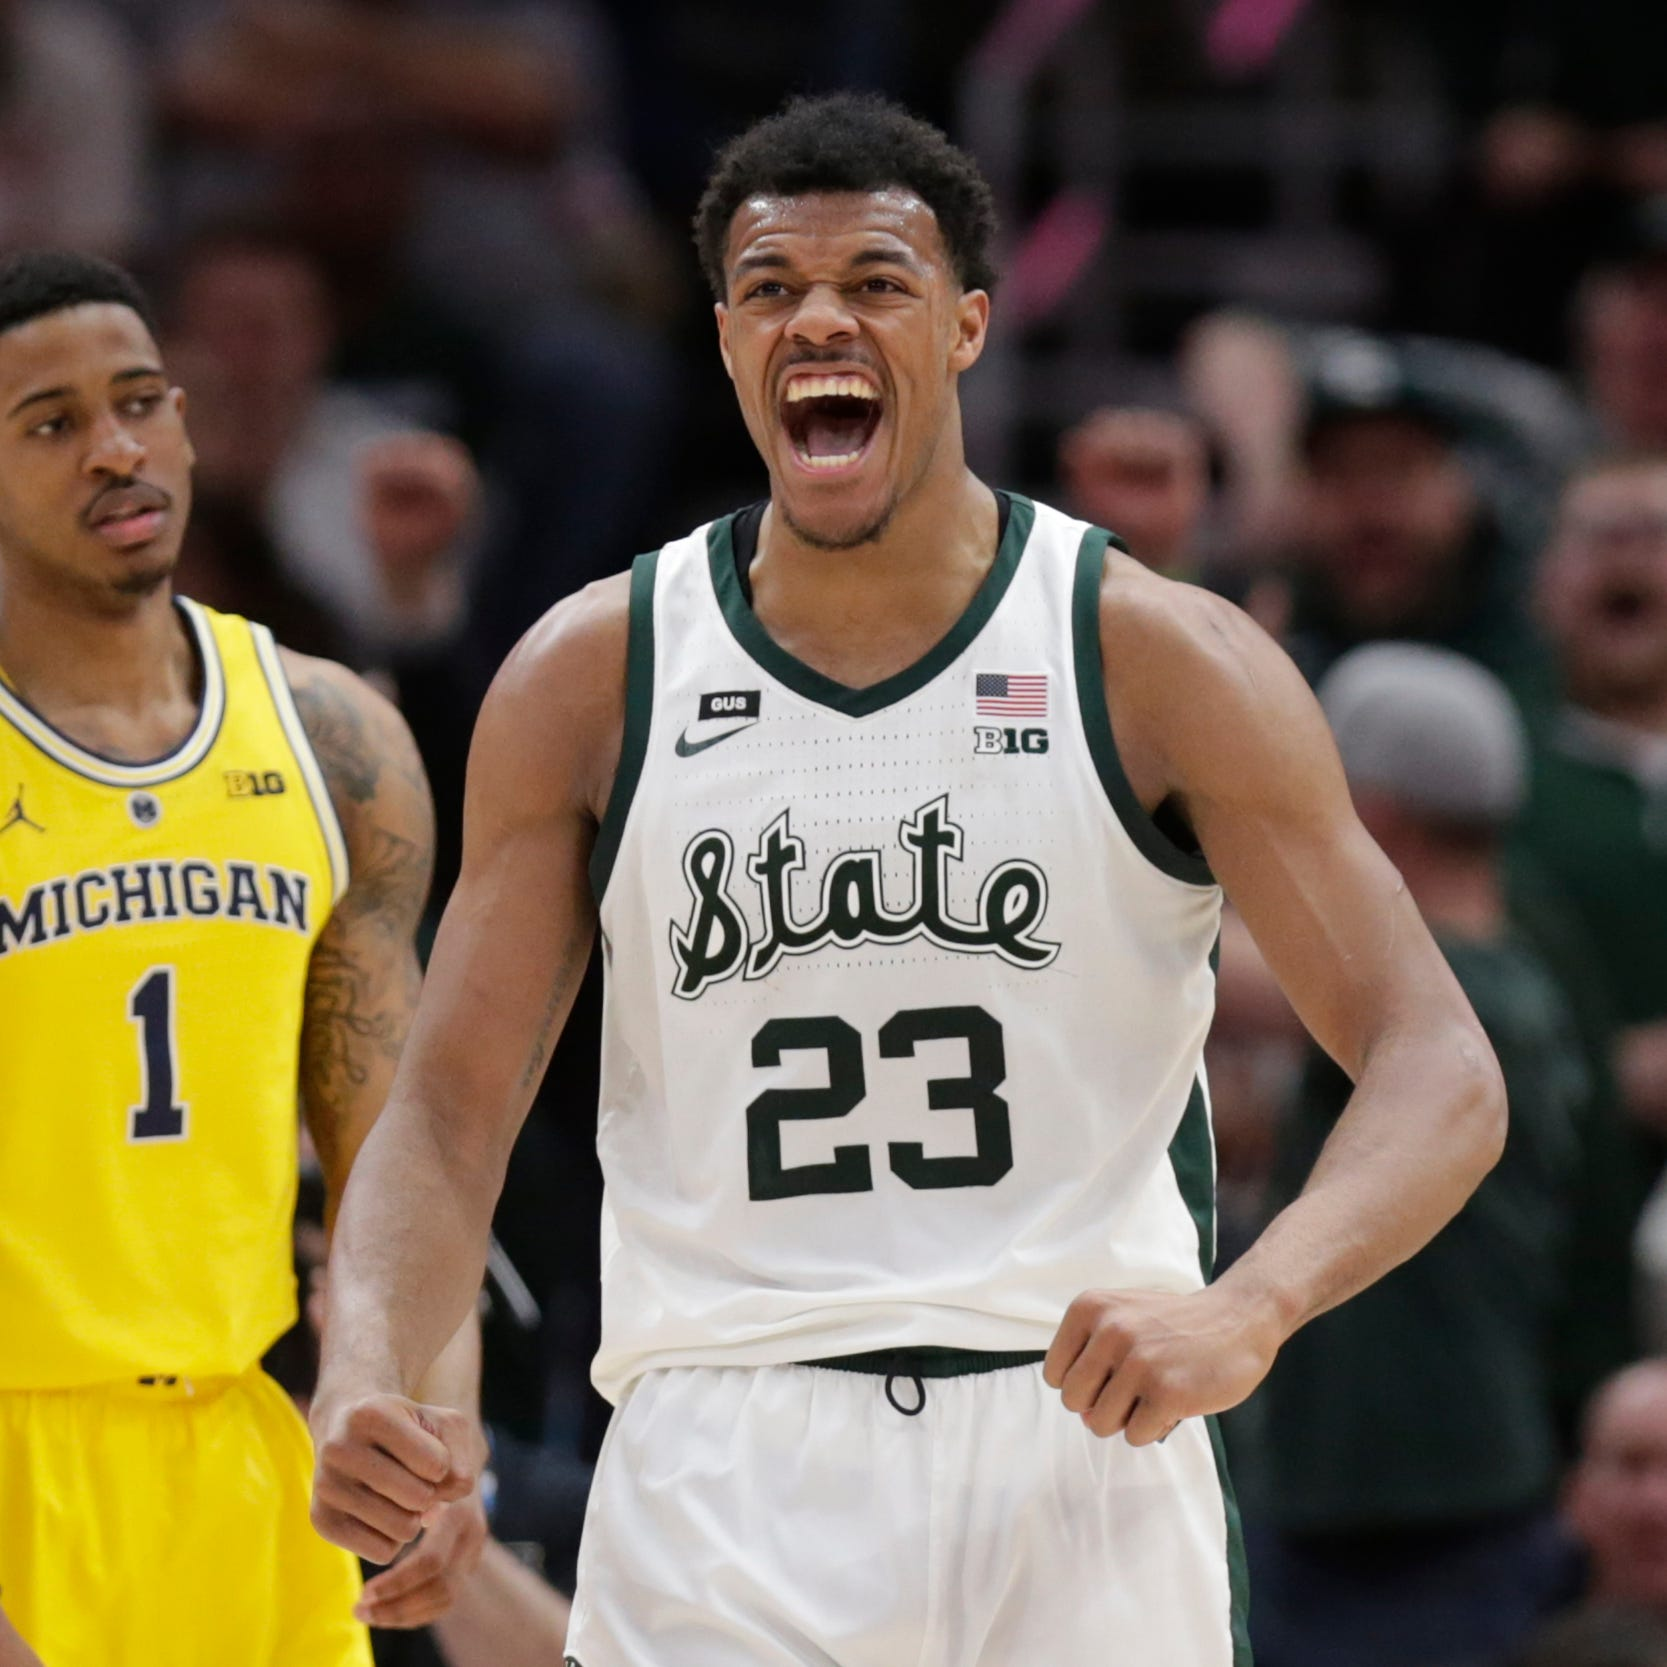 No. 2 seed Michigan State opens vs. Bradley; Tom Izzo baffled by draw